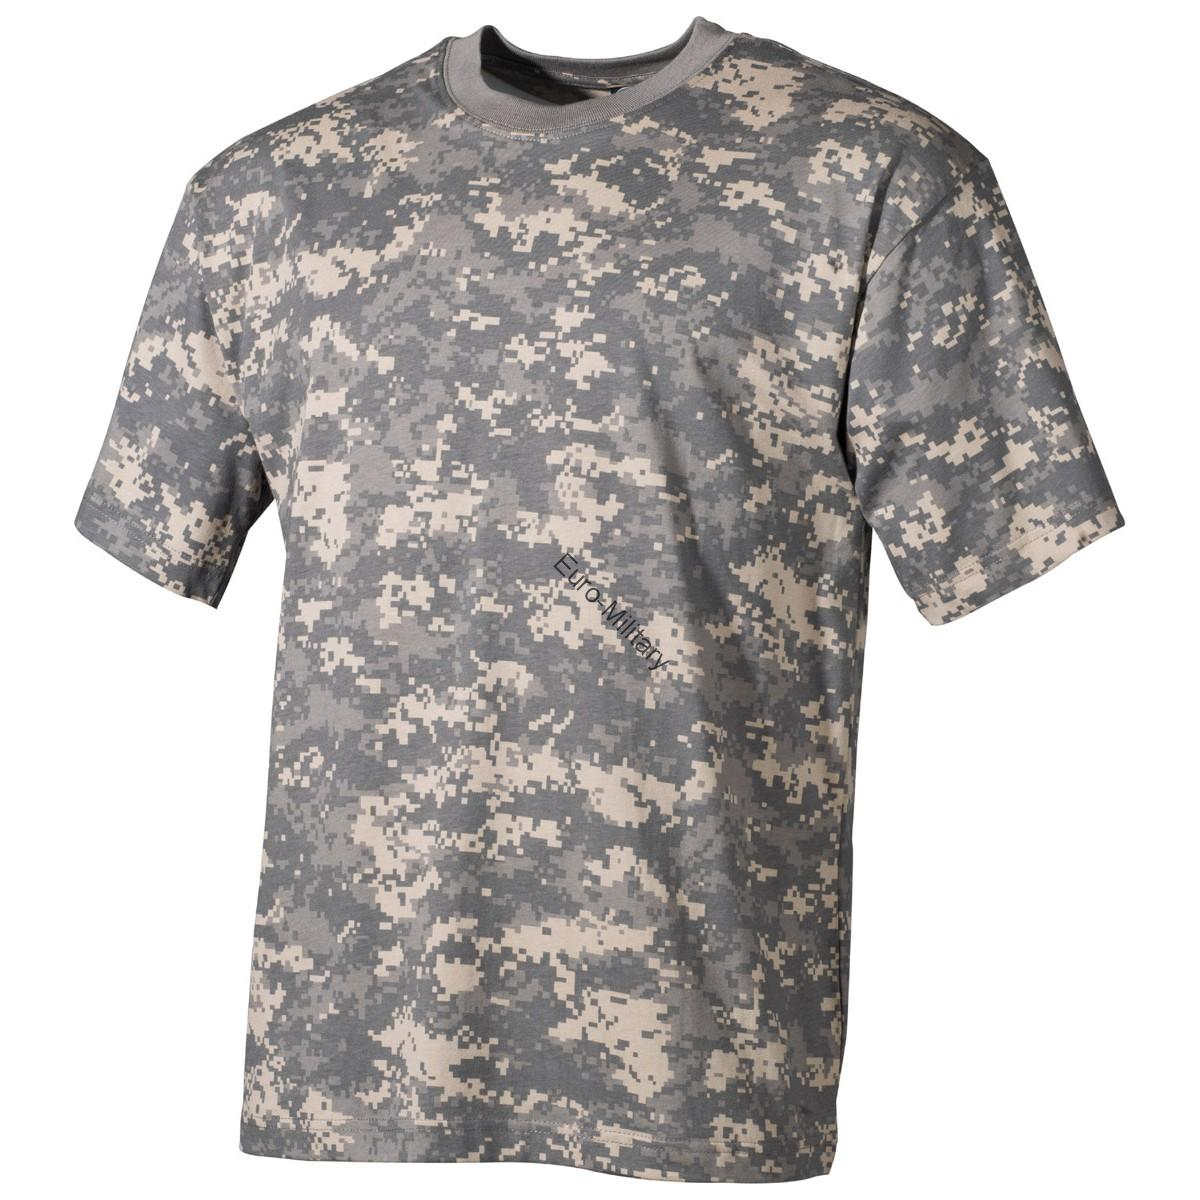 US Army Digital Camo T-Shirt - Short Sleeve